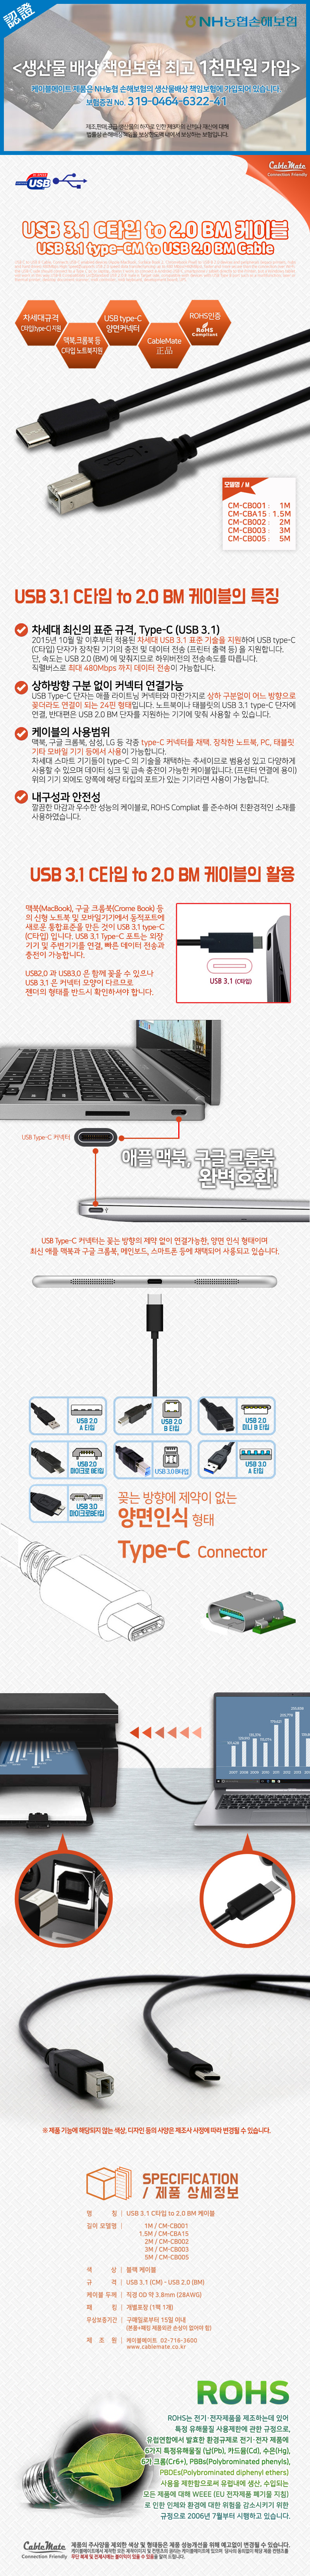 CABLEMATE USB 2.0 Type C to Type B 케이블 (CM-CBA15, 1.5m)